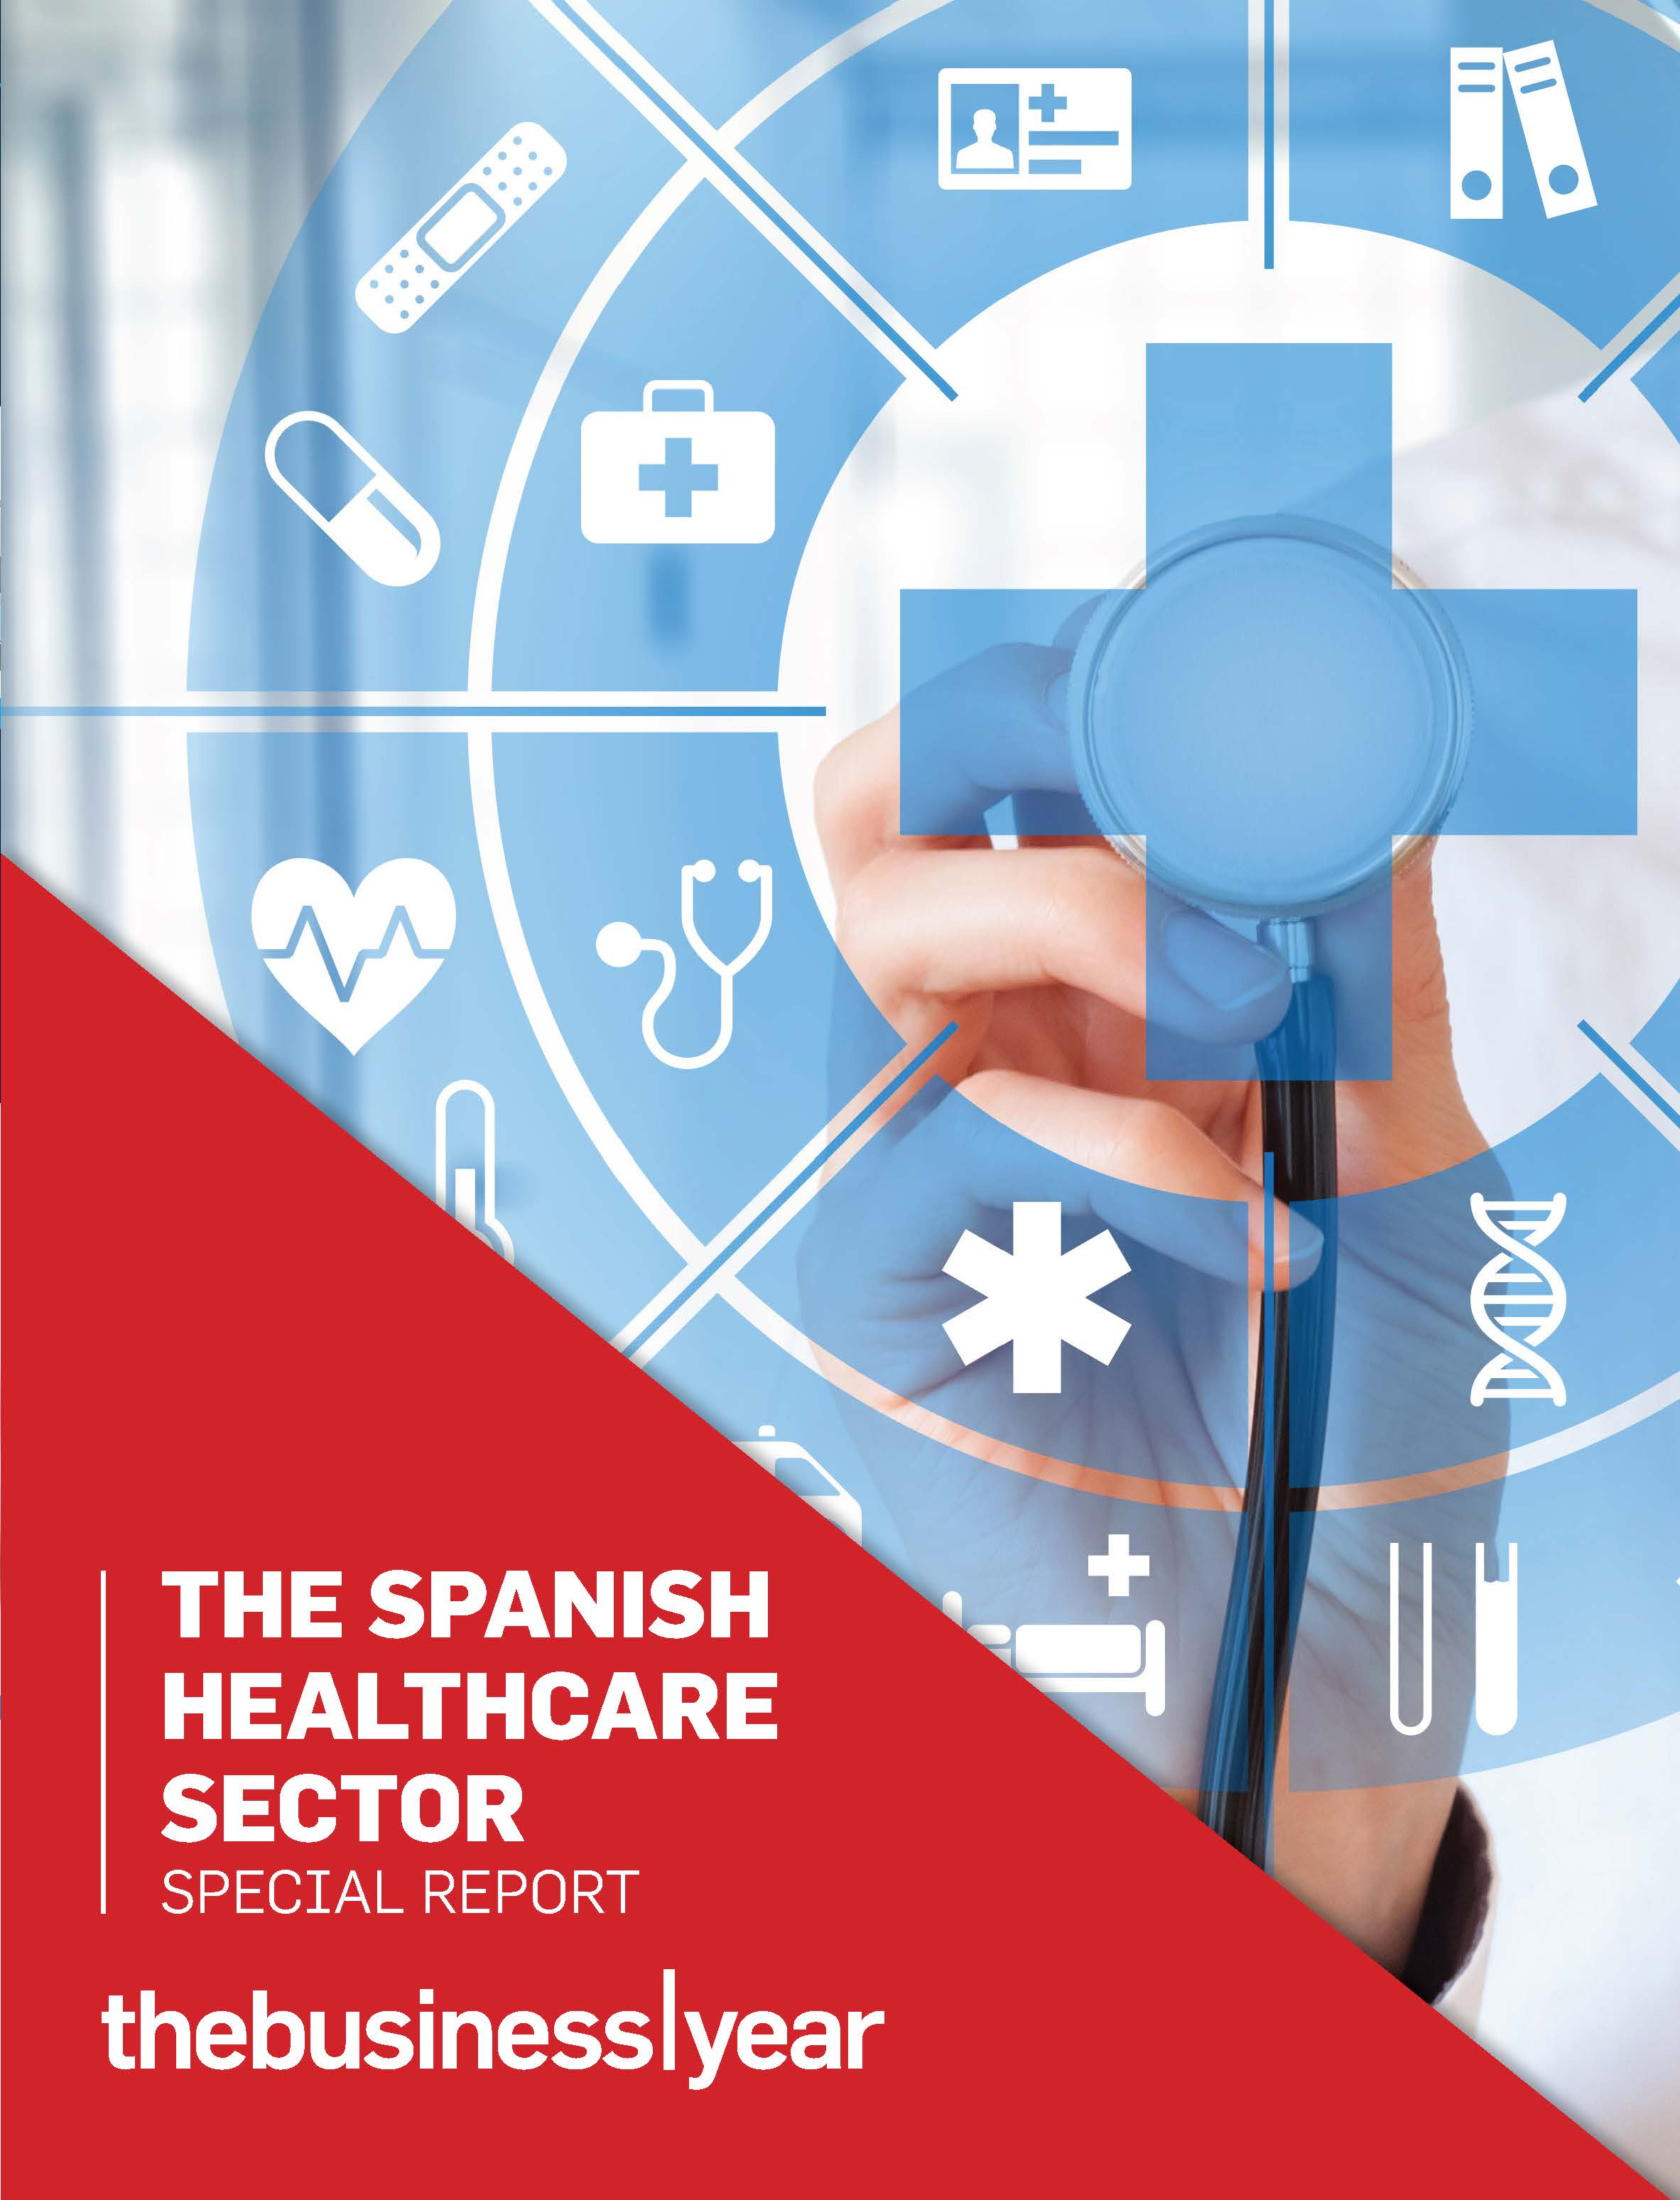 The Spanish Healthcare Sector